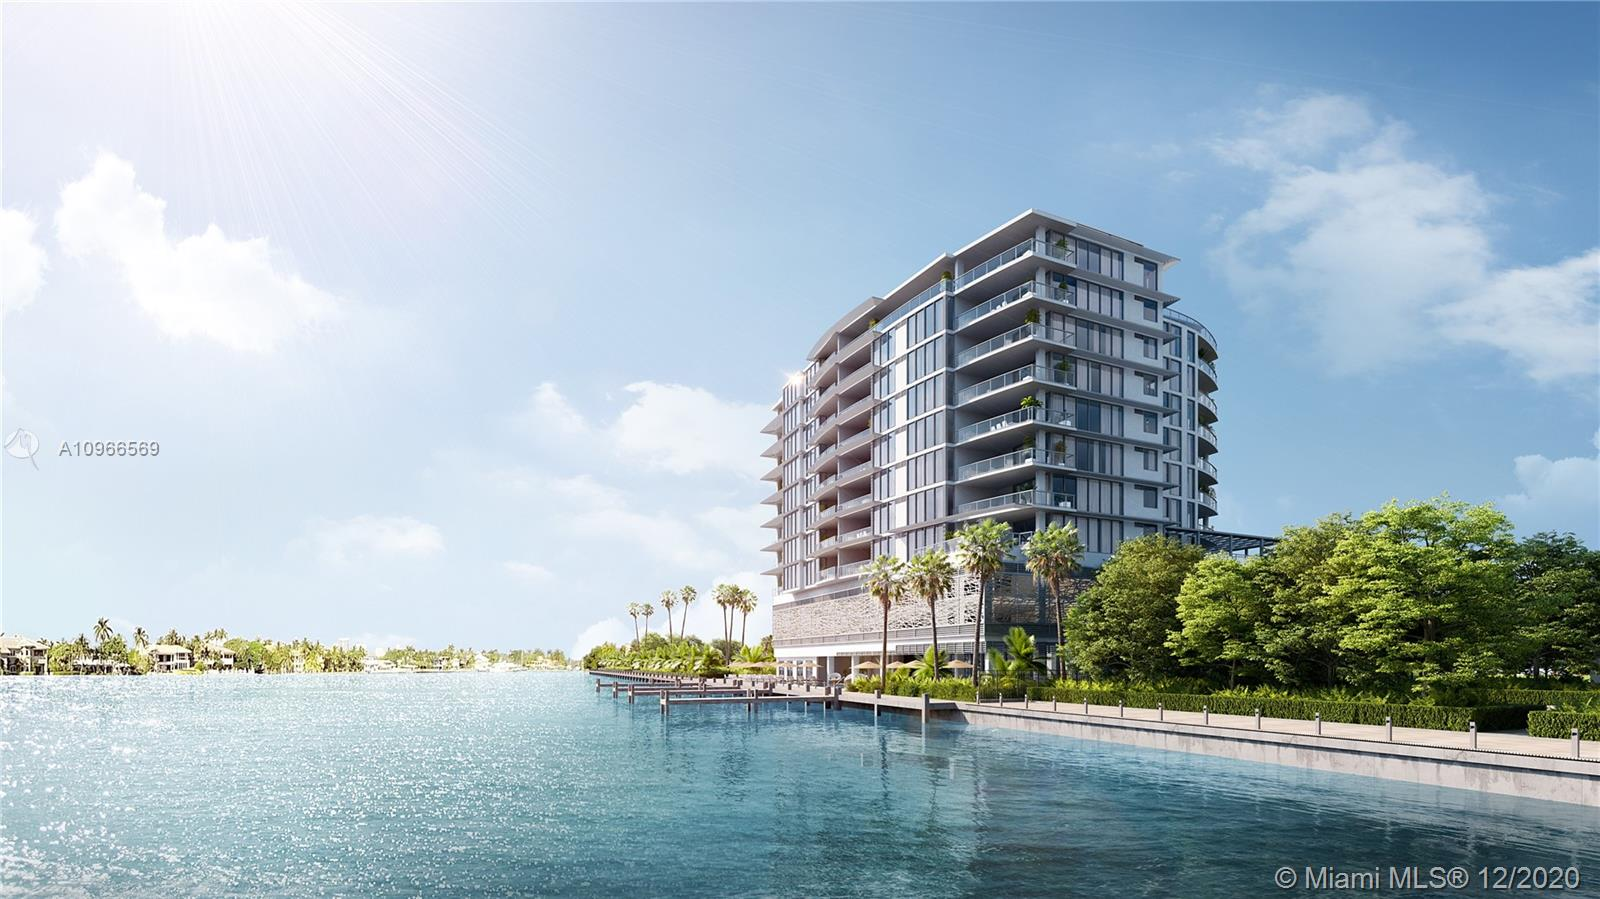 ADAGIO Fort Lauderdale Beach offers exclusivity and serenity. Breathtaking views of the Intracoastal Waterway and just a short walk away from the white sandy beach. 31 residences deliver an elegant boutique lifestyle at Fort Lauderdale's North Beach Village. Flow through design with Gaggenau appliances including a GAS cook-top, deep terraces with a Summer Kitchen, high ceilings, 2 car parking, private elevator entry, Intracoastal sunset pool with cabanas, rooftop pool, fitness center, private climate controlled storage units, and private marina with docks available.